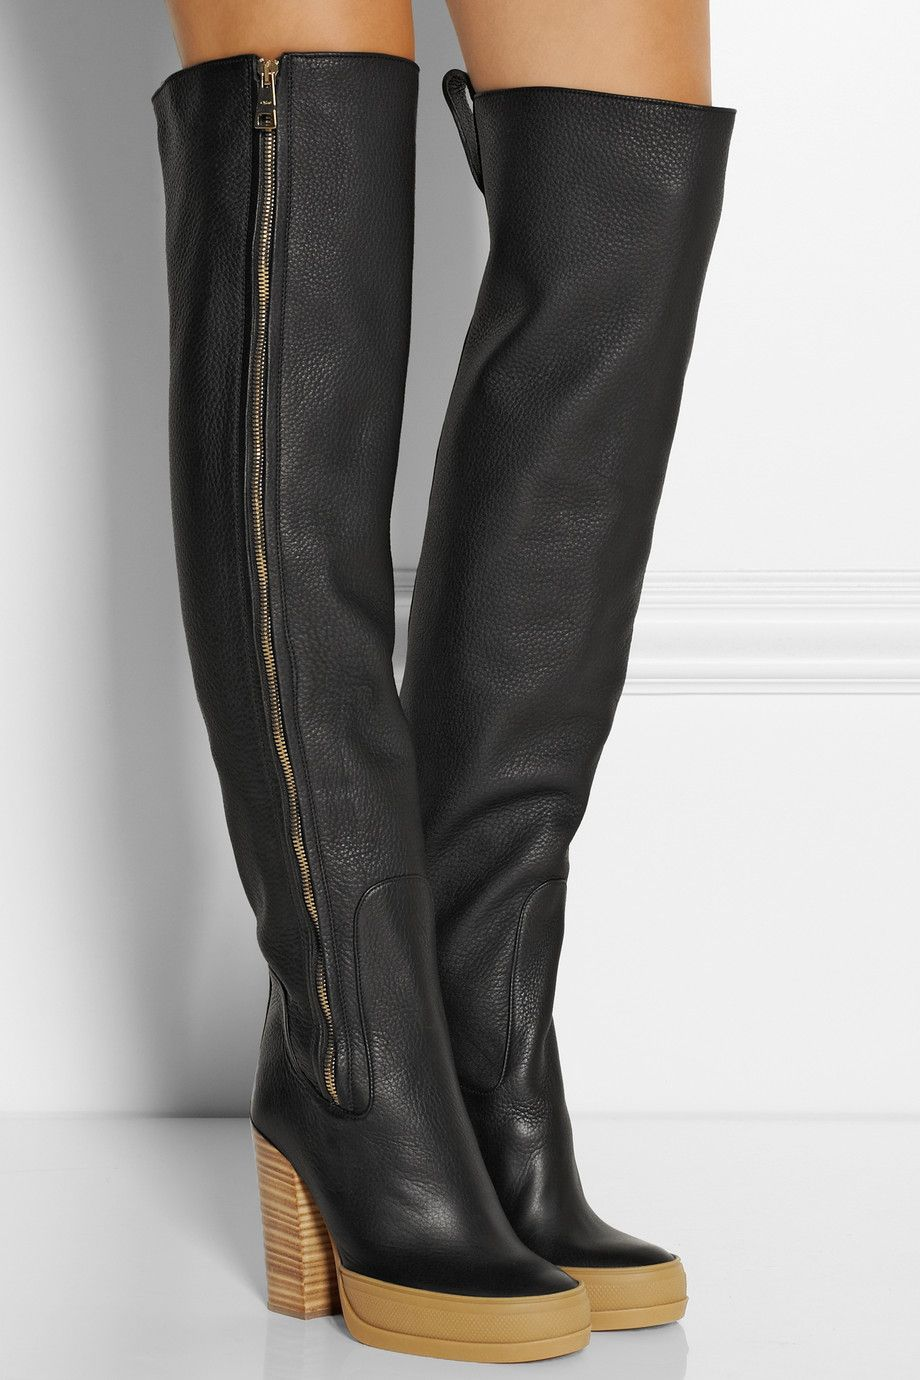 Chloé|Textured-leather over-the-knee boots|NET-A-PORTER.COM